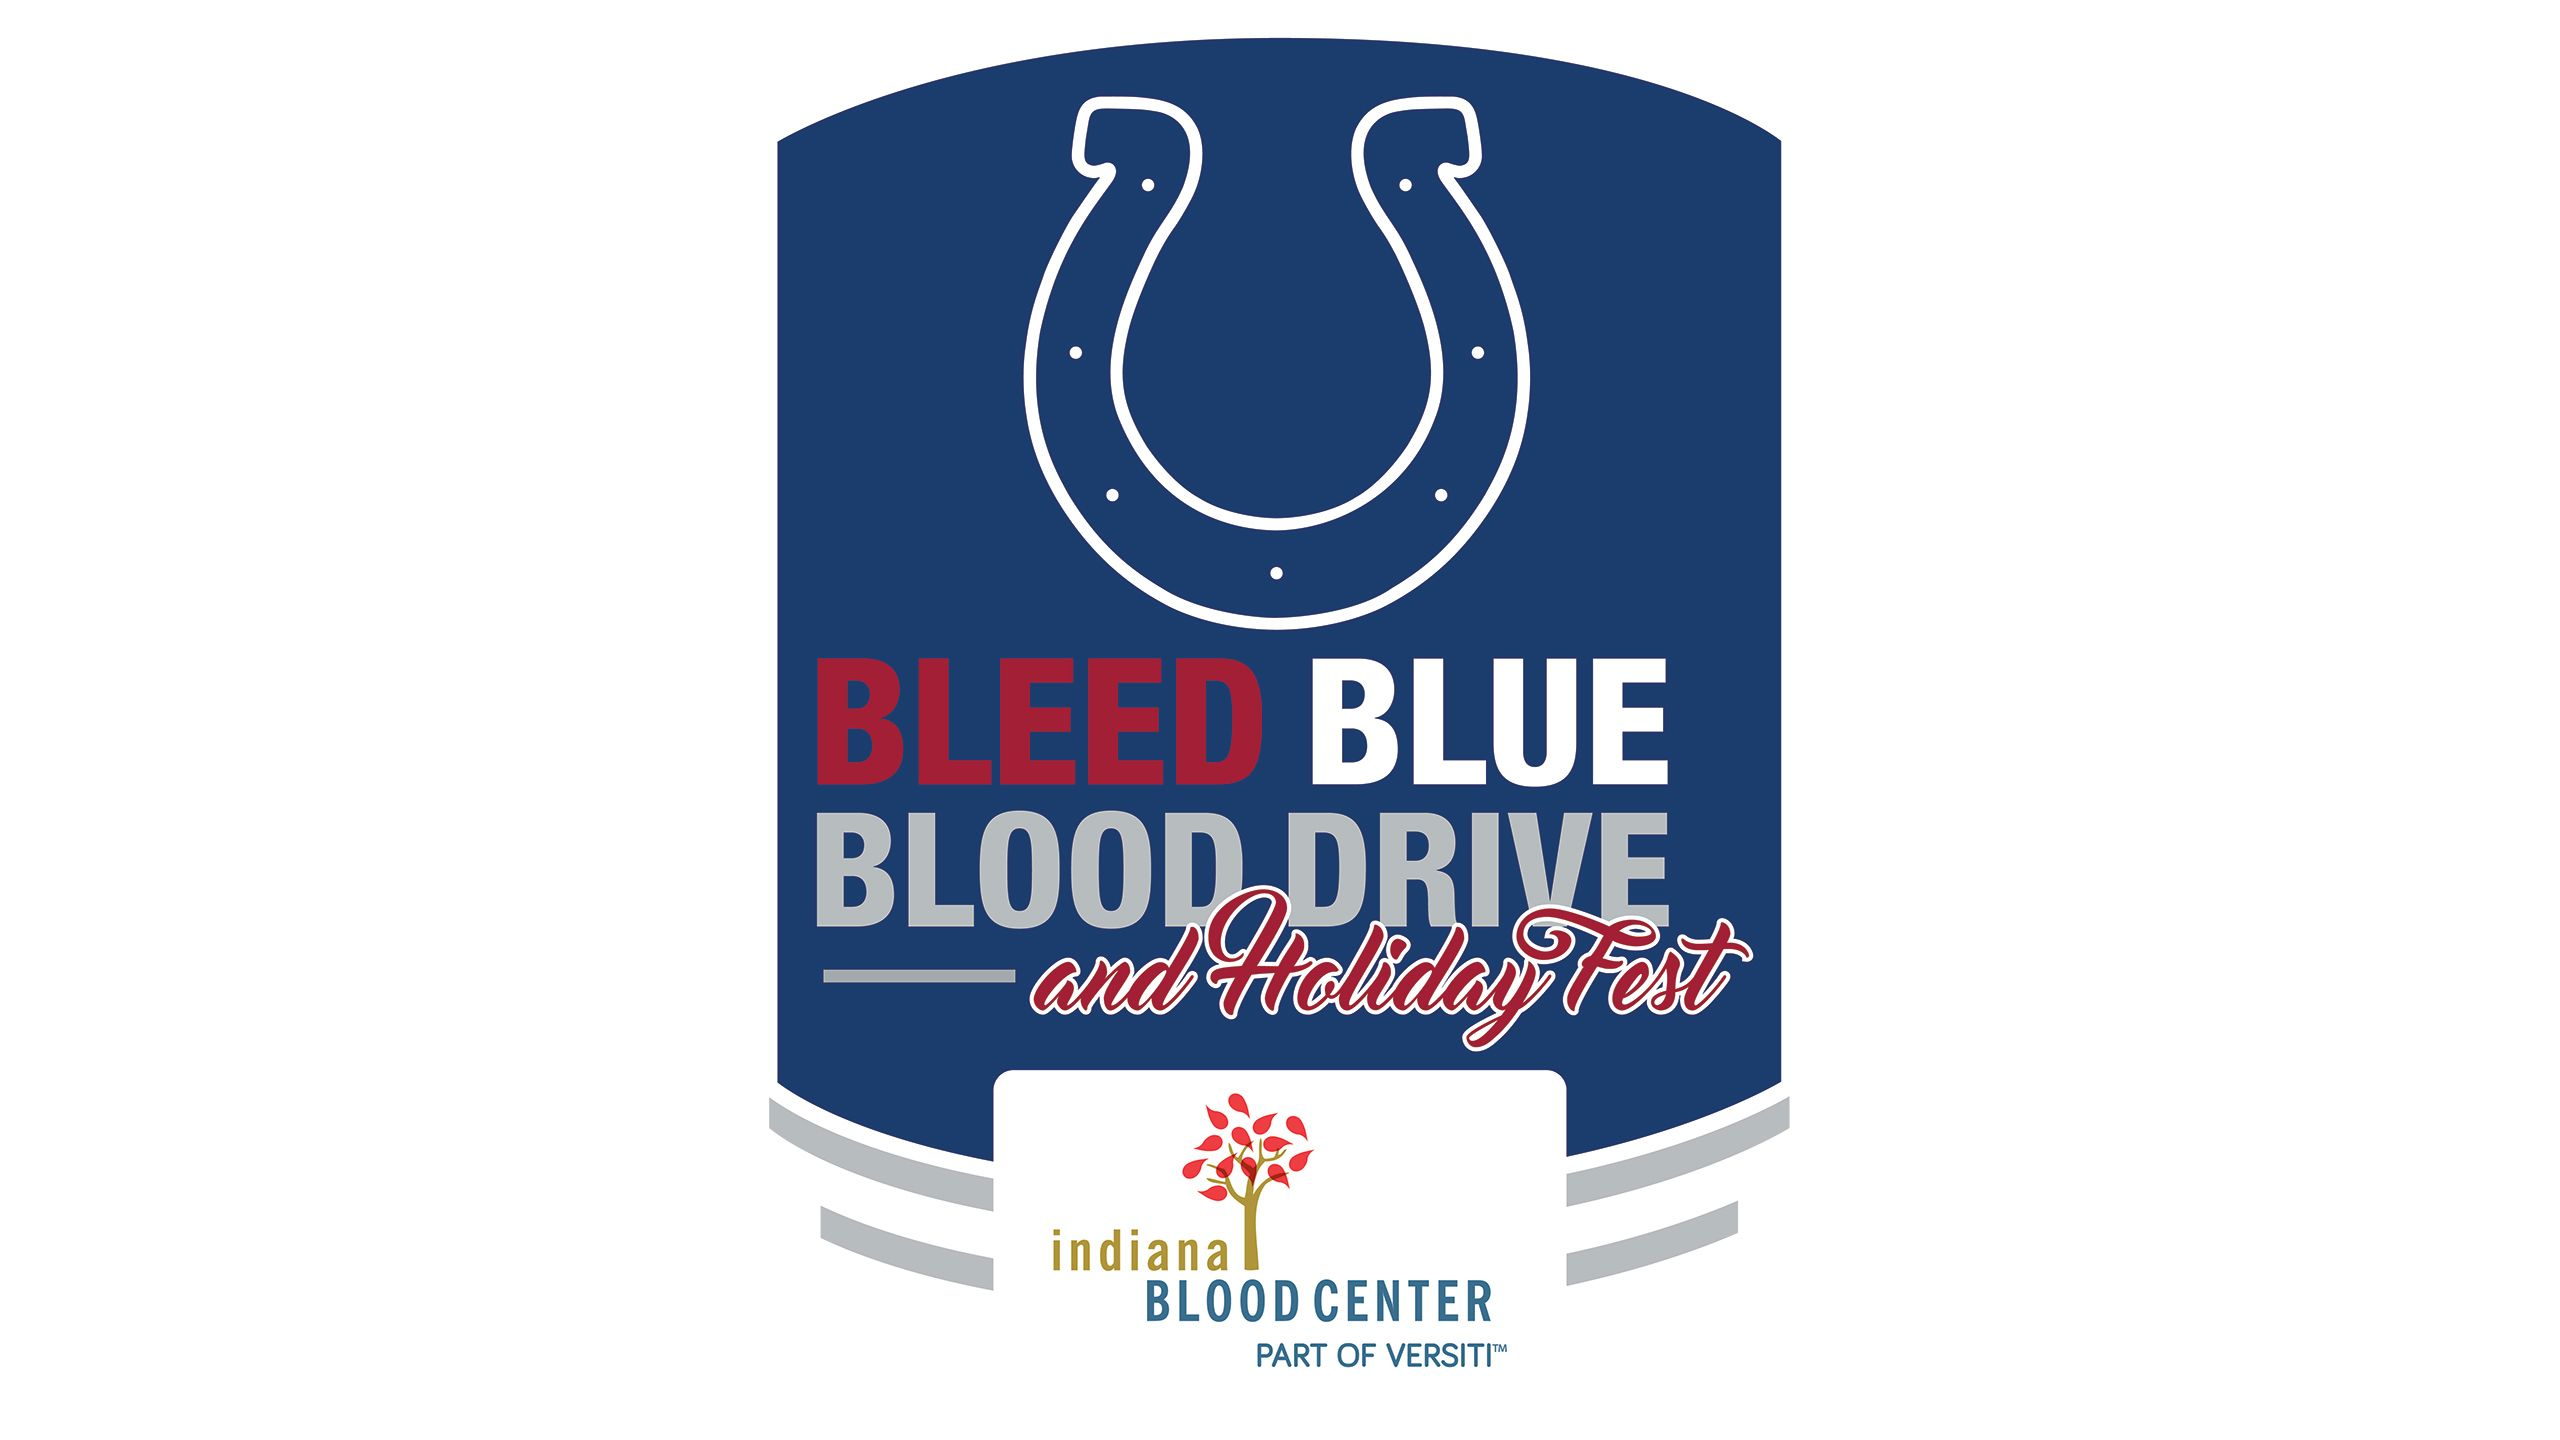 Bleed Blue Blood Drive and Holiday Fest